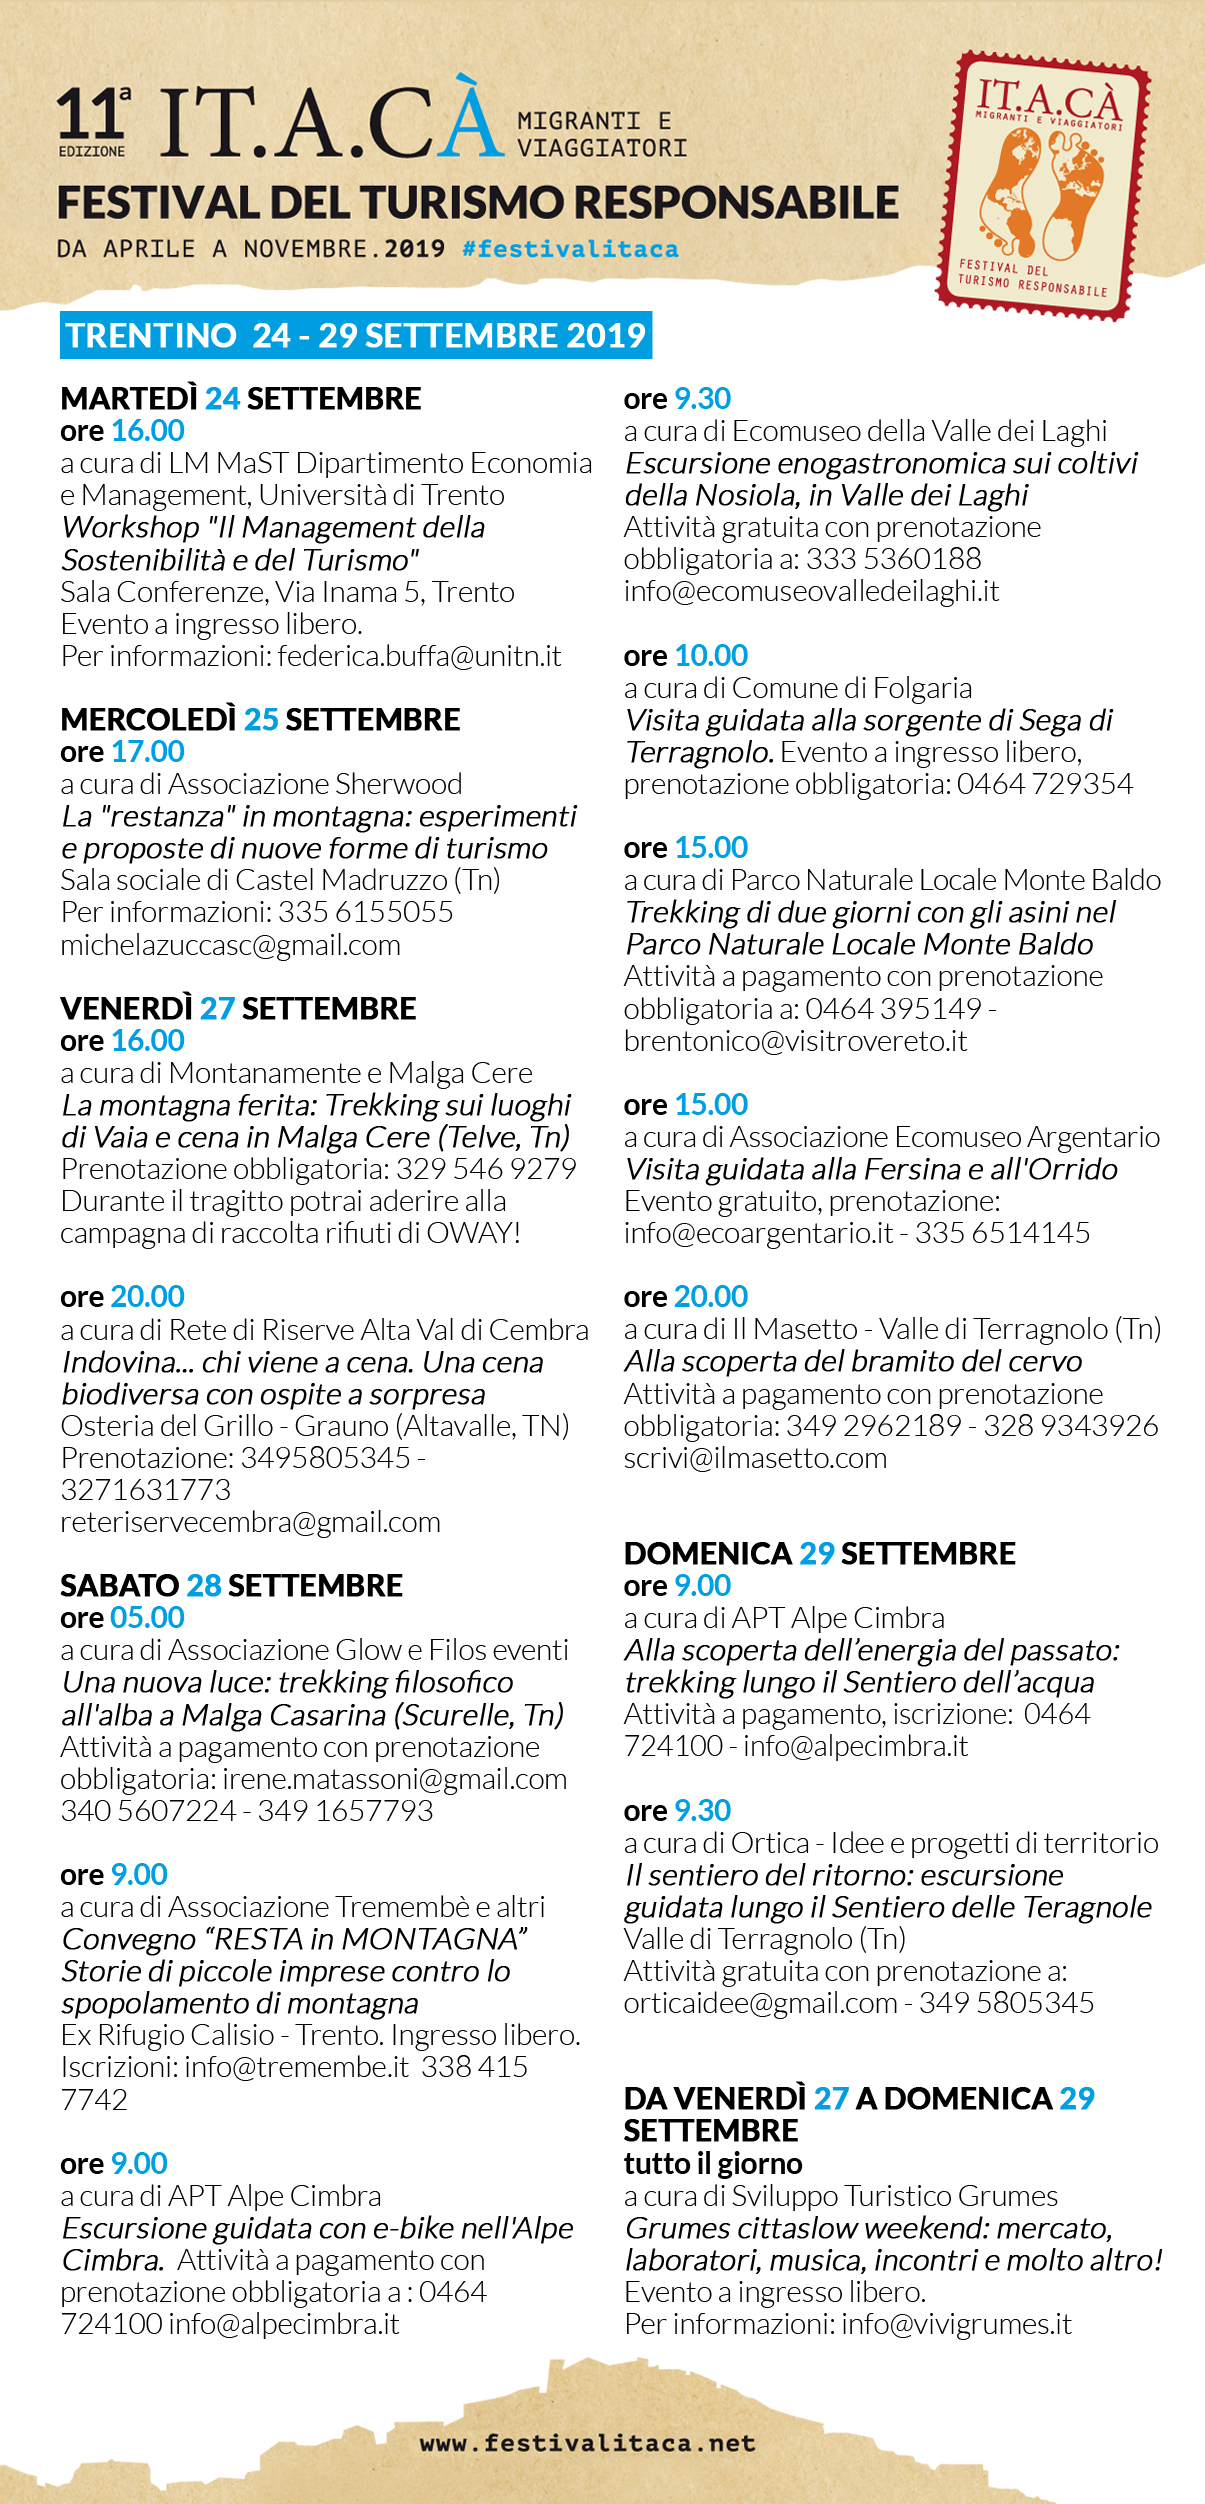 PROGRAMMA DEL FESTIVAL IT.A.CÀ IN TRENTINO